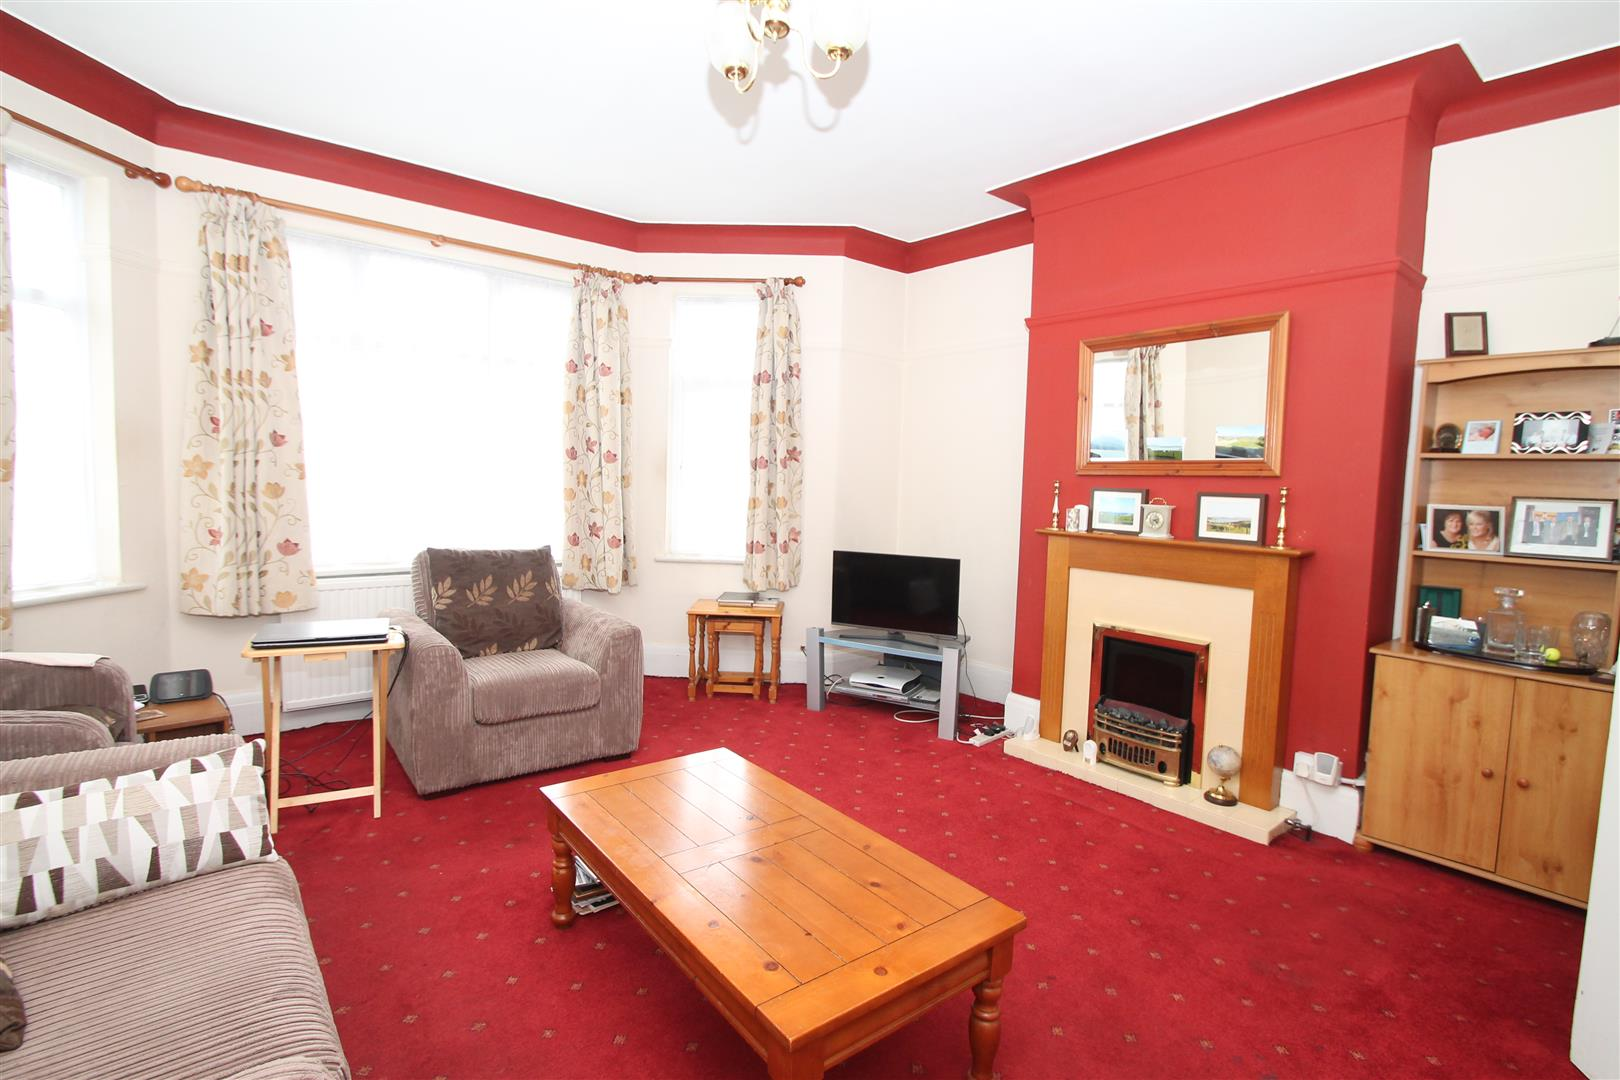 2 Bedrooms Flat for sale in North Circular Road, London N13